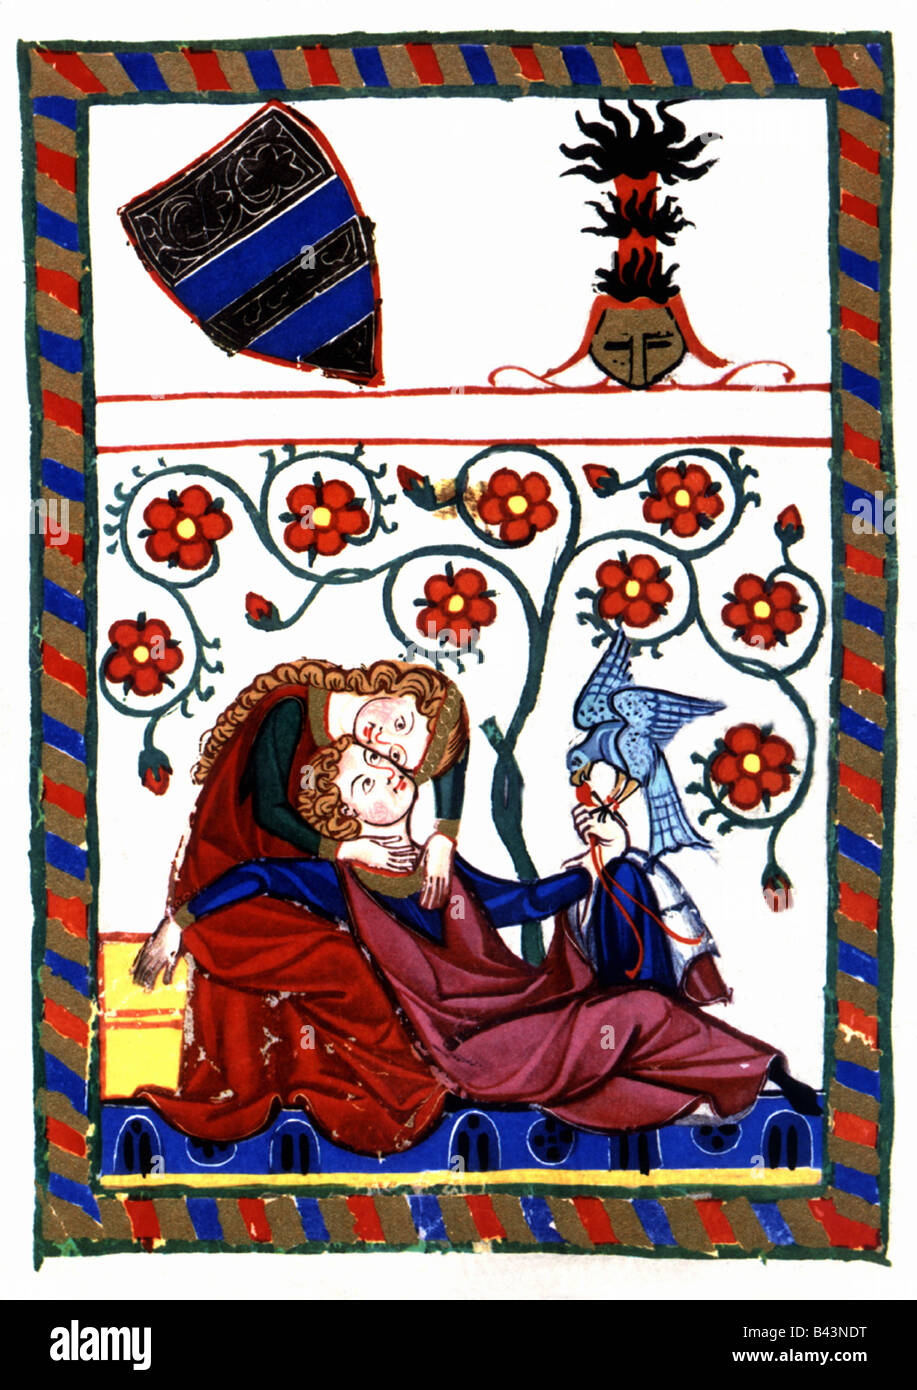 Konrad of Altstetten (mentioned 1268), Swiss minstrel, miniature, Codex Manesse), Zurich, 1305 - 1340, , Additional - Stock Image